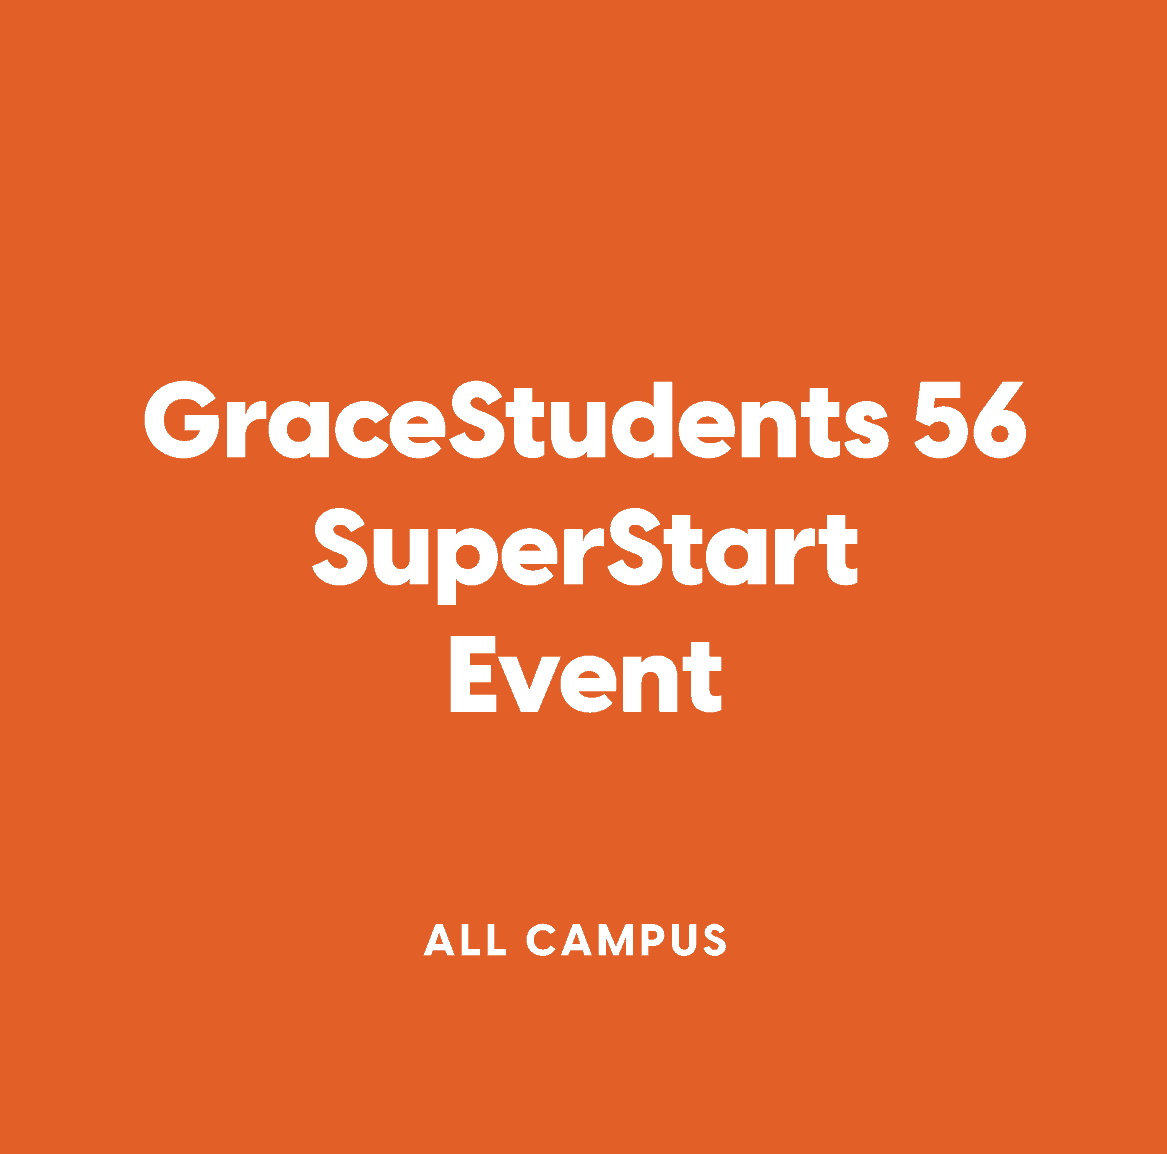 All-Campus GraceStudents 56 SuperStart Event